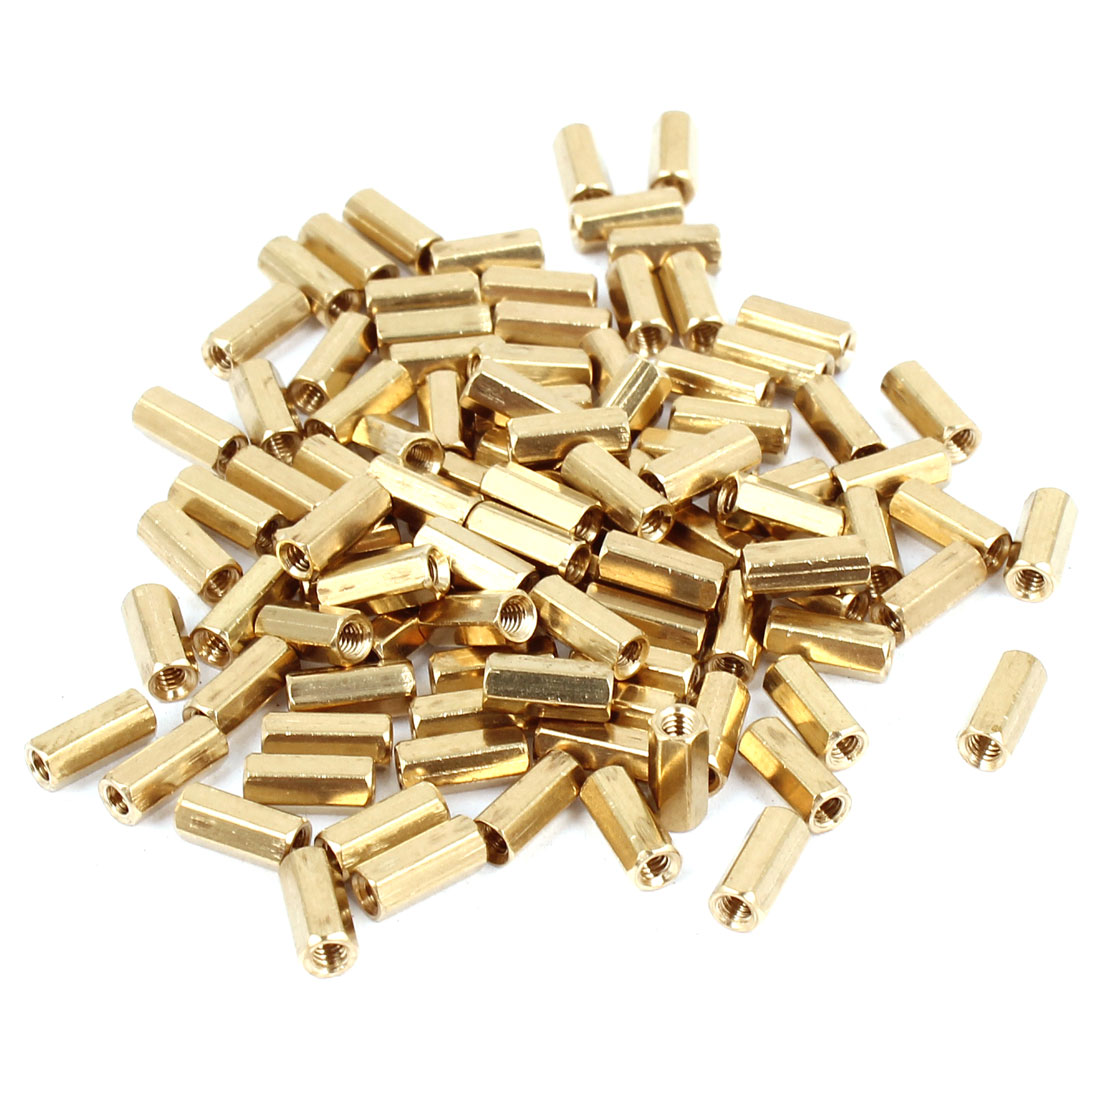 100 Pcs M2 7mm Hexagonal Net Nut Female Brass Standoff Spacer for CCTV Camera